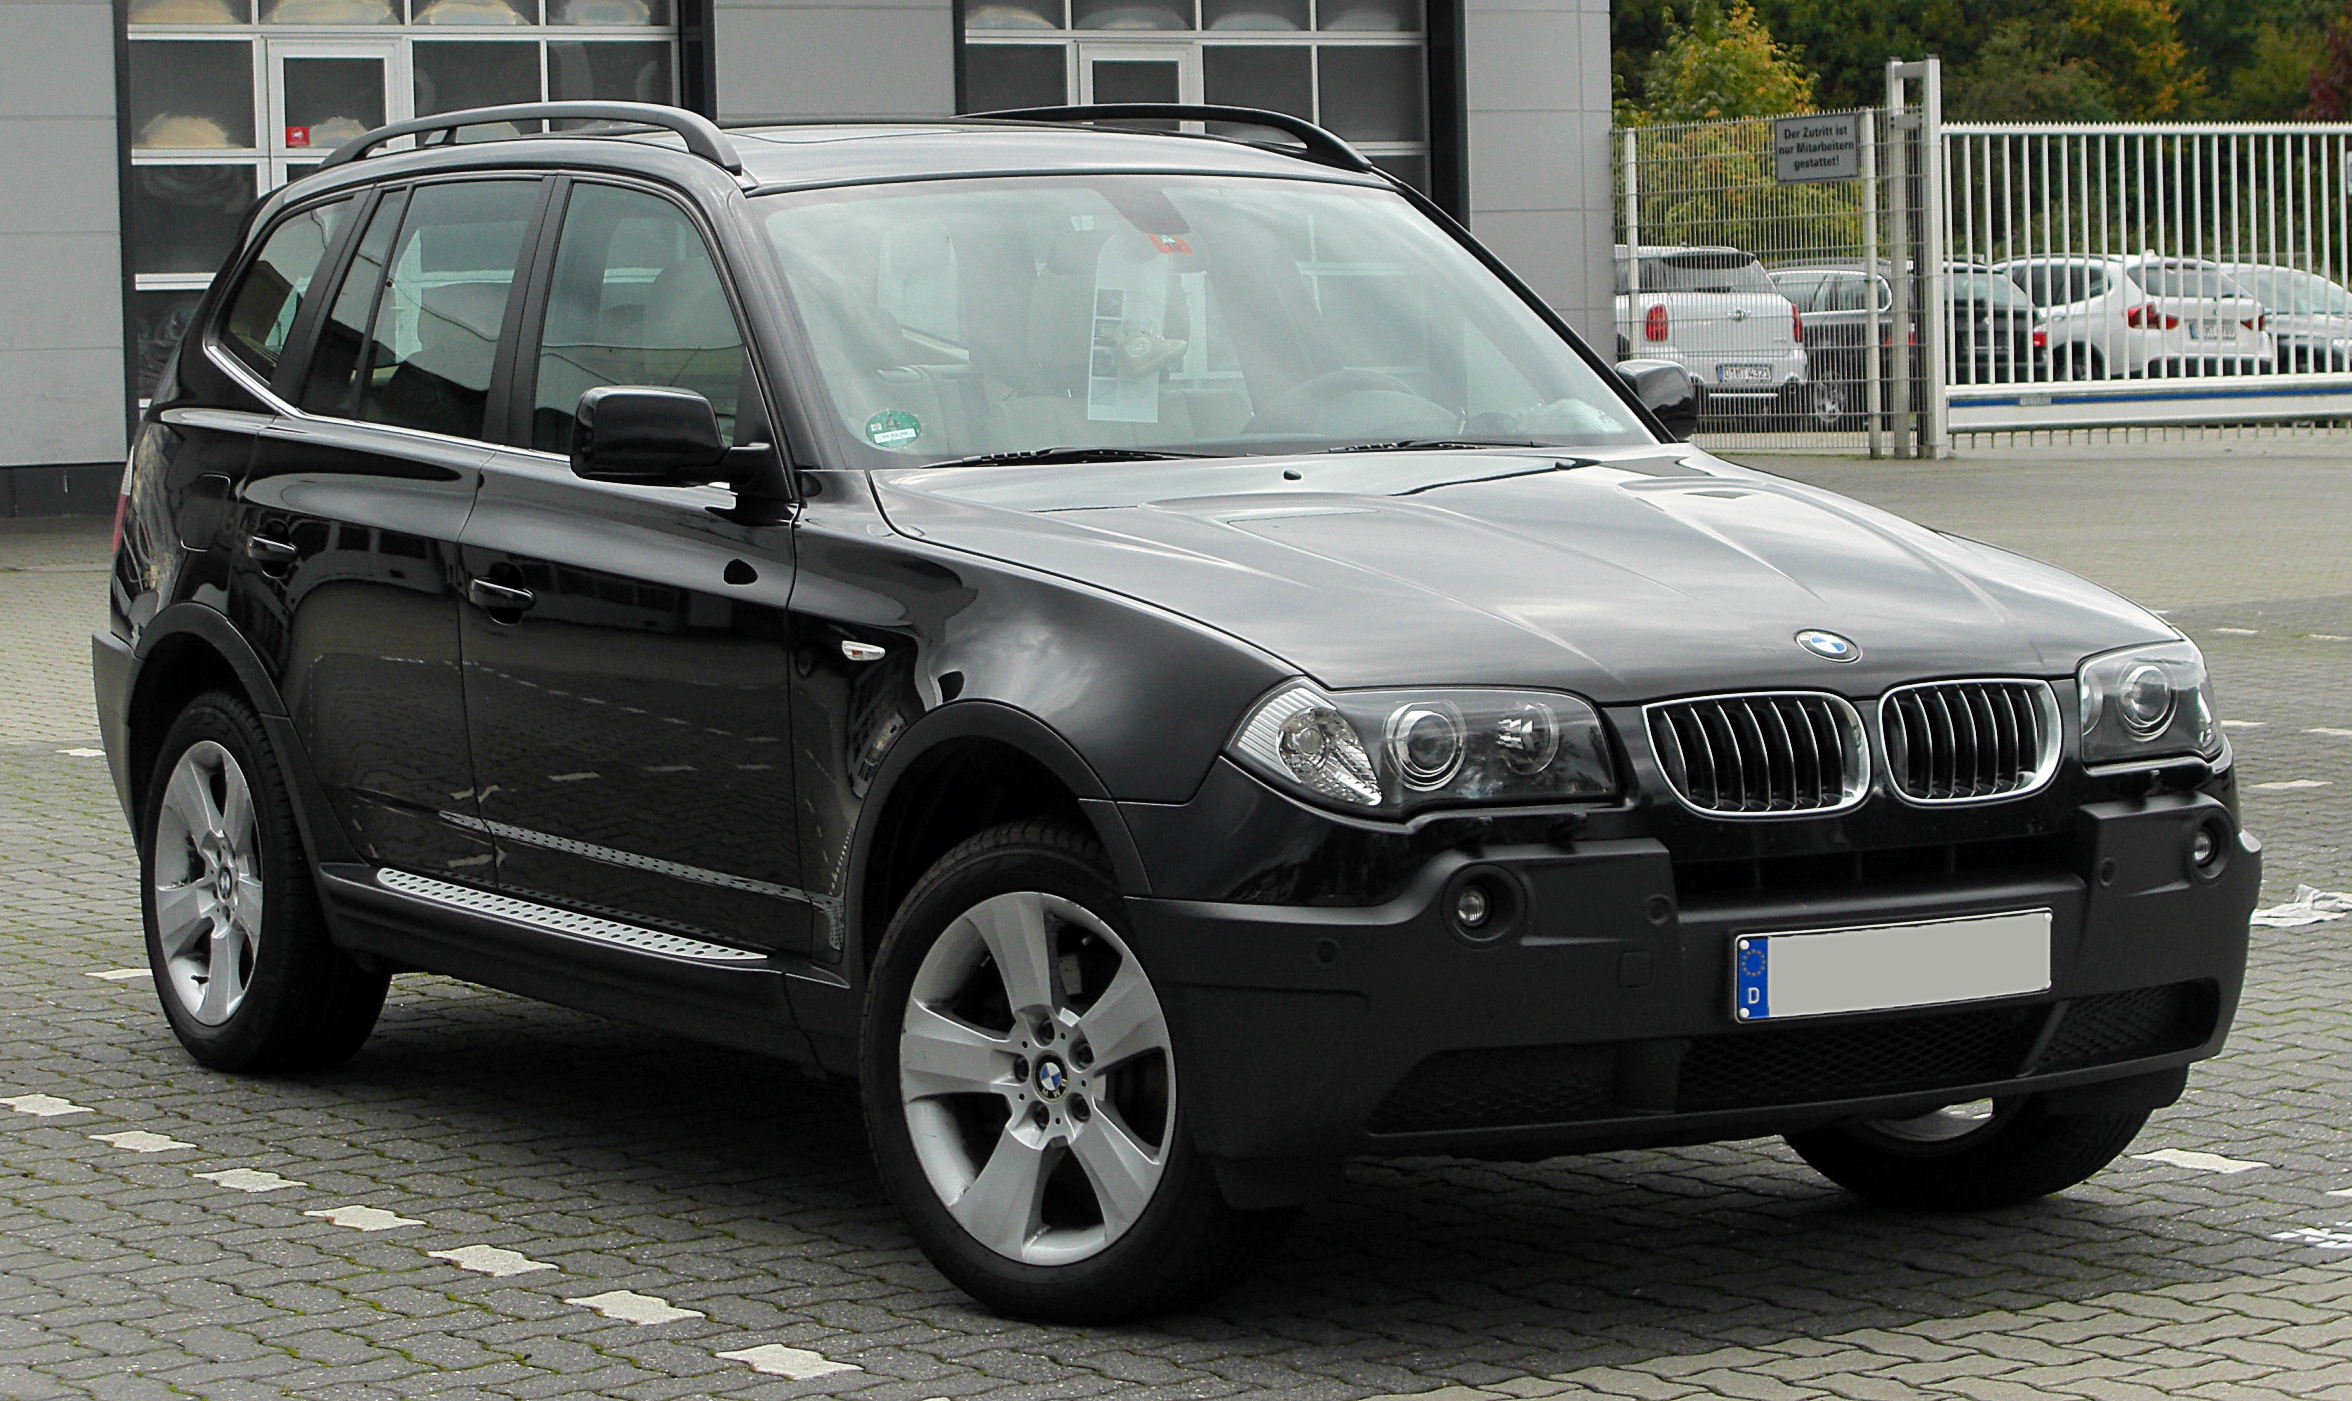 file bmw x3 e83 facelift front wikimedia commons